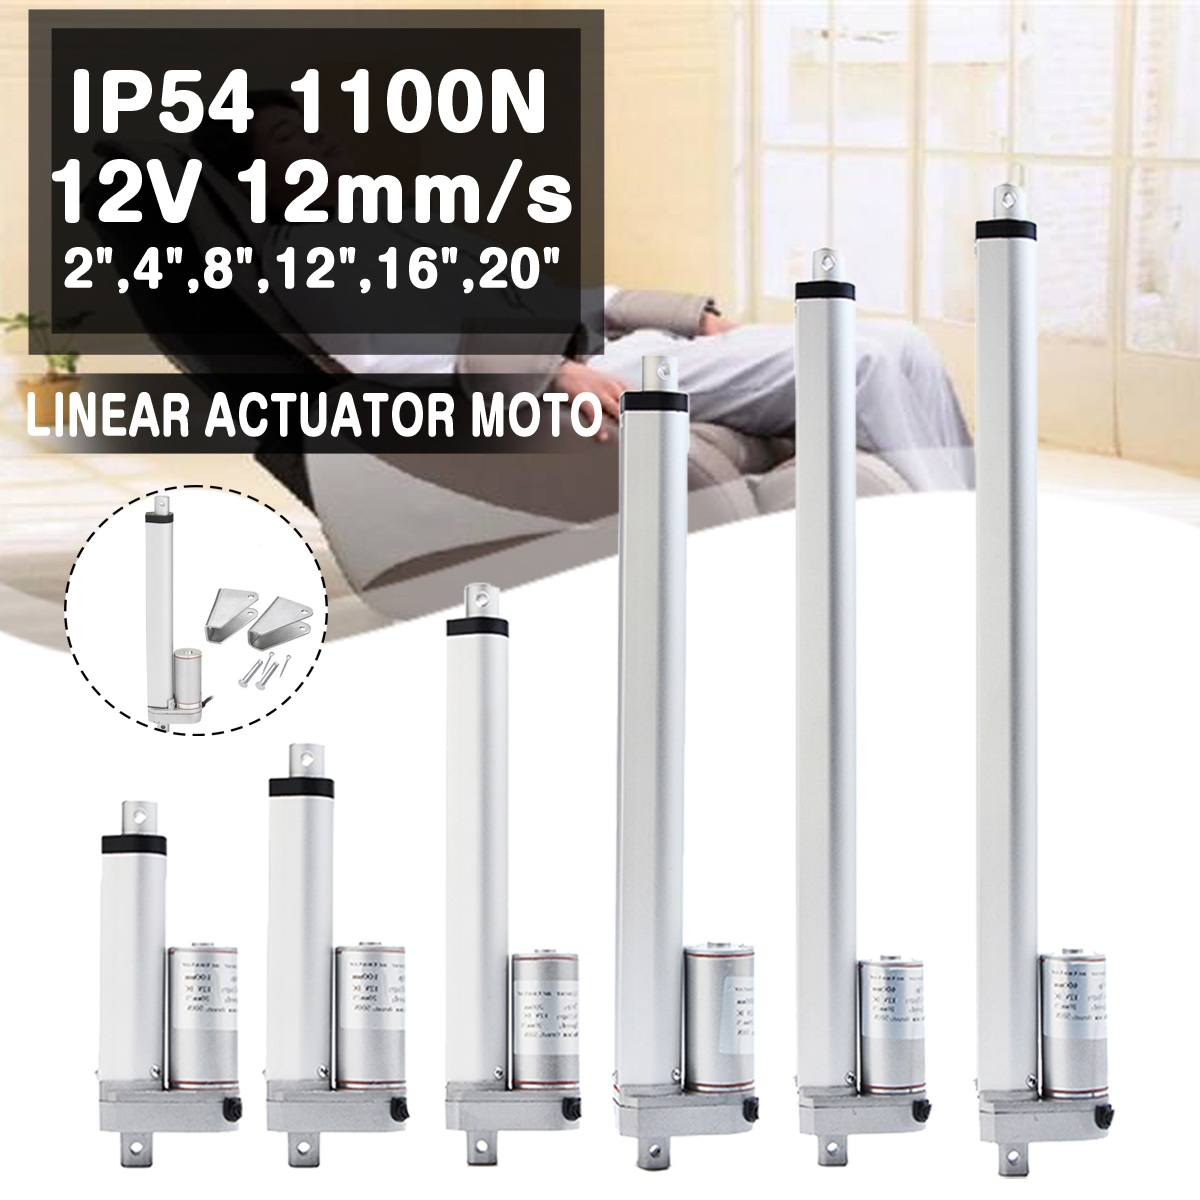 IP54 1200N 12V 9mm/s Small DC Electric Push Rod White Material Aluminum Alloy  For lectric Self Unicycle Scooter Input VoltageIP54 1200N 12V 9mm/s Small DC Electric Push Rod White Material Aluminum Alloy  For lectric Self Unicycle Scooter Input Voltage